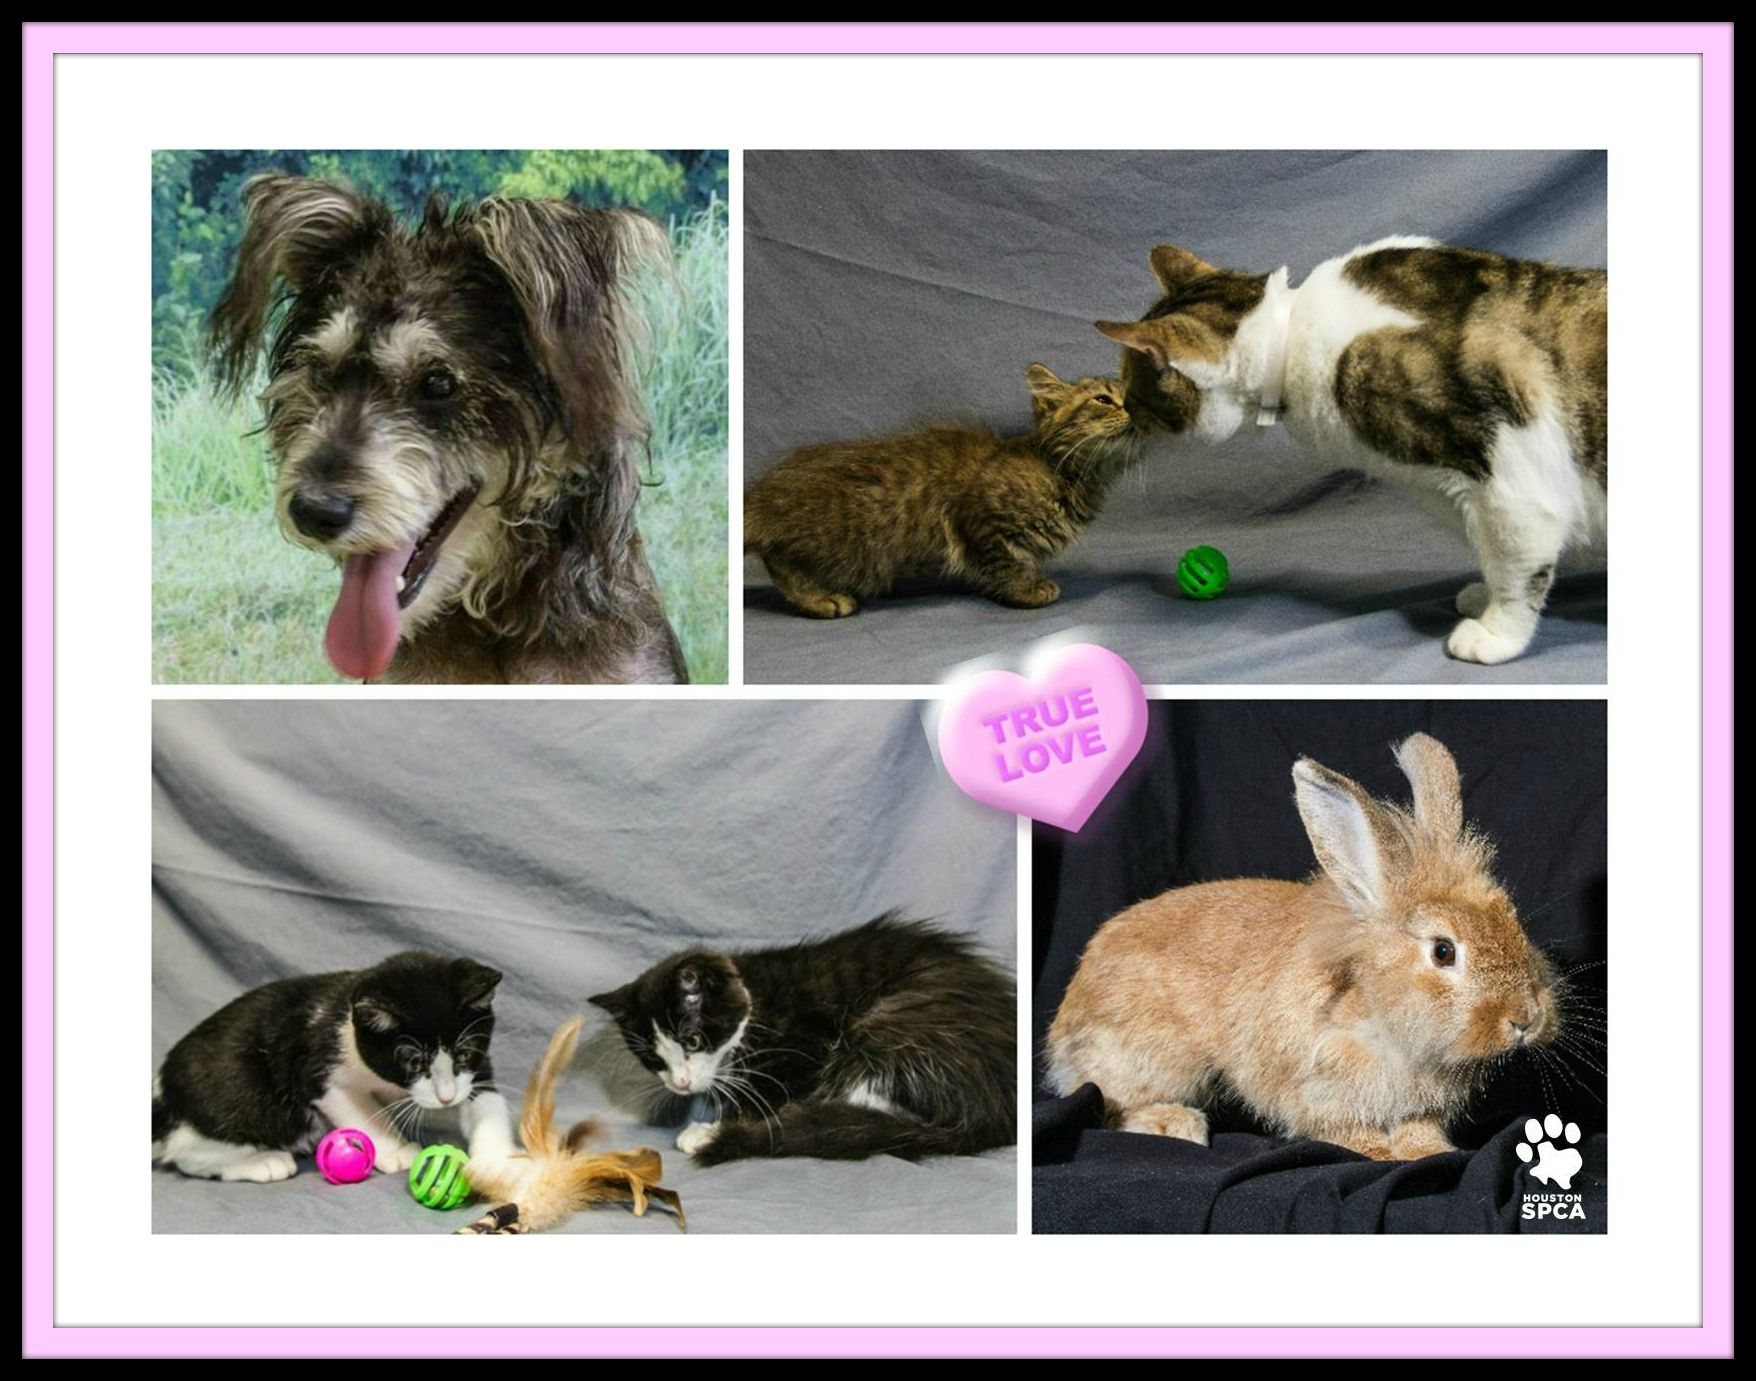 From August 15 August 17 All Kittens Cats Dogs Excluding Those In The Spot Peabody Room And Rabbits Are Available For 10 Kittens Adoption Stories Dogs